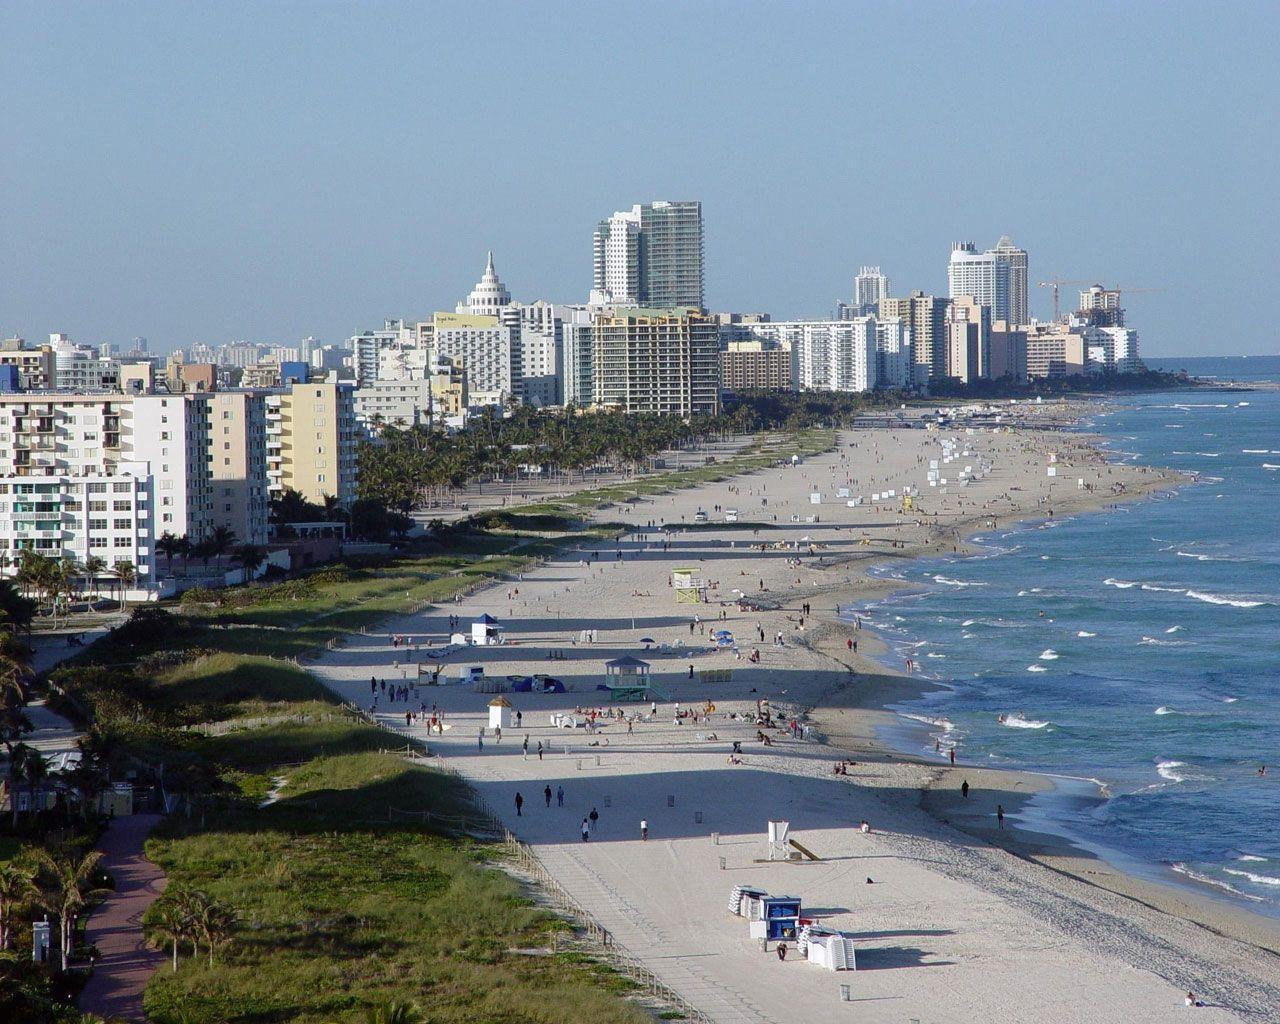 Miami Beach Widescreen picture Wallpaper - Laut Digital